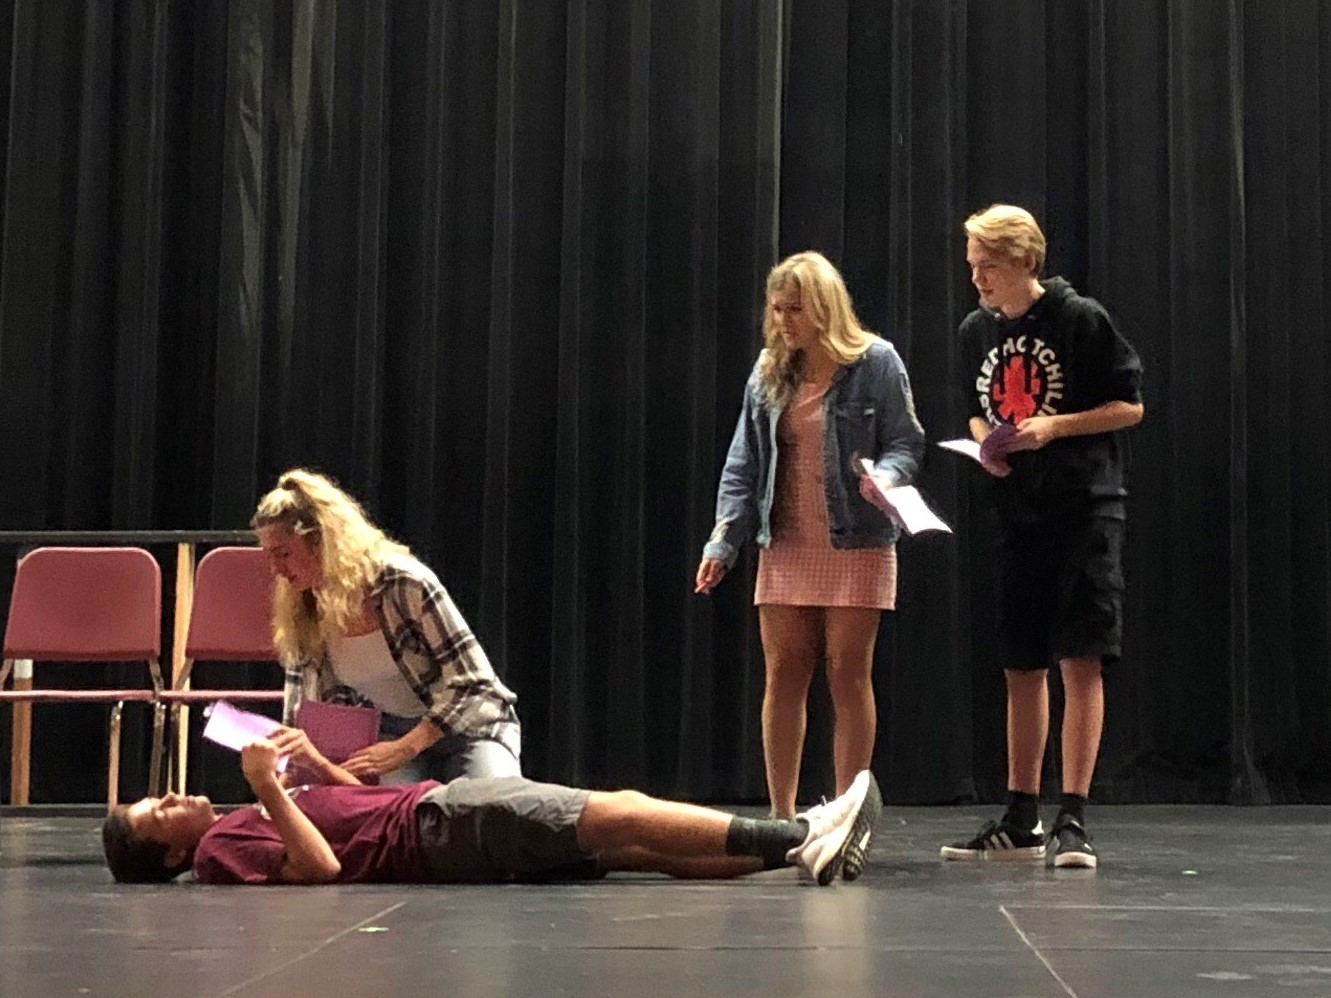 PR students (pictured from left to right) Josh Zakoian, Lily Pyket, Samantha Hemstreet, and Sam Gawronski practice a scene from this fall's play Kodachrome, opening October 17.